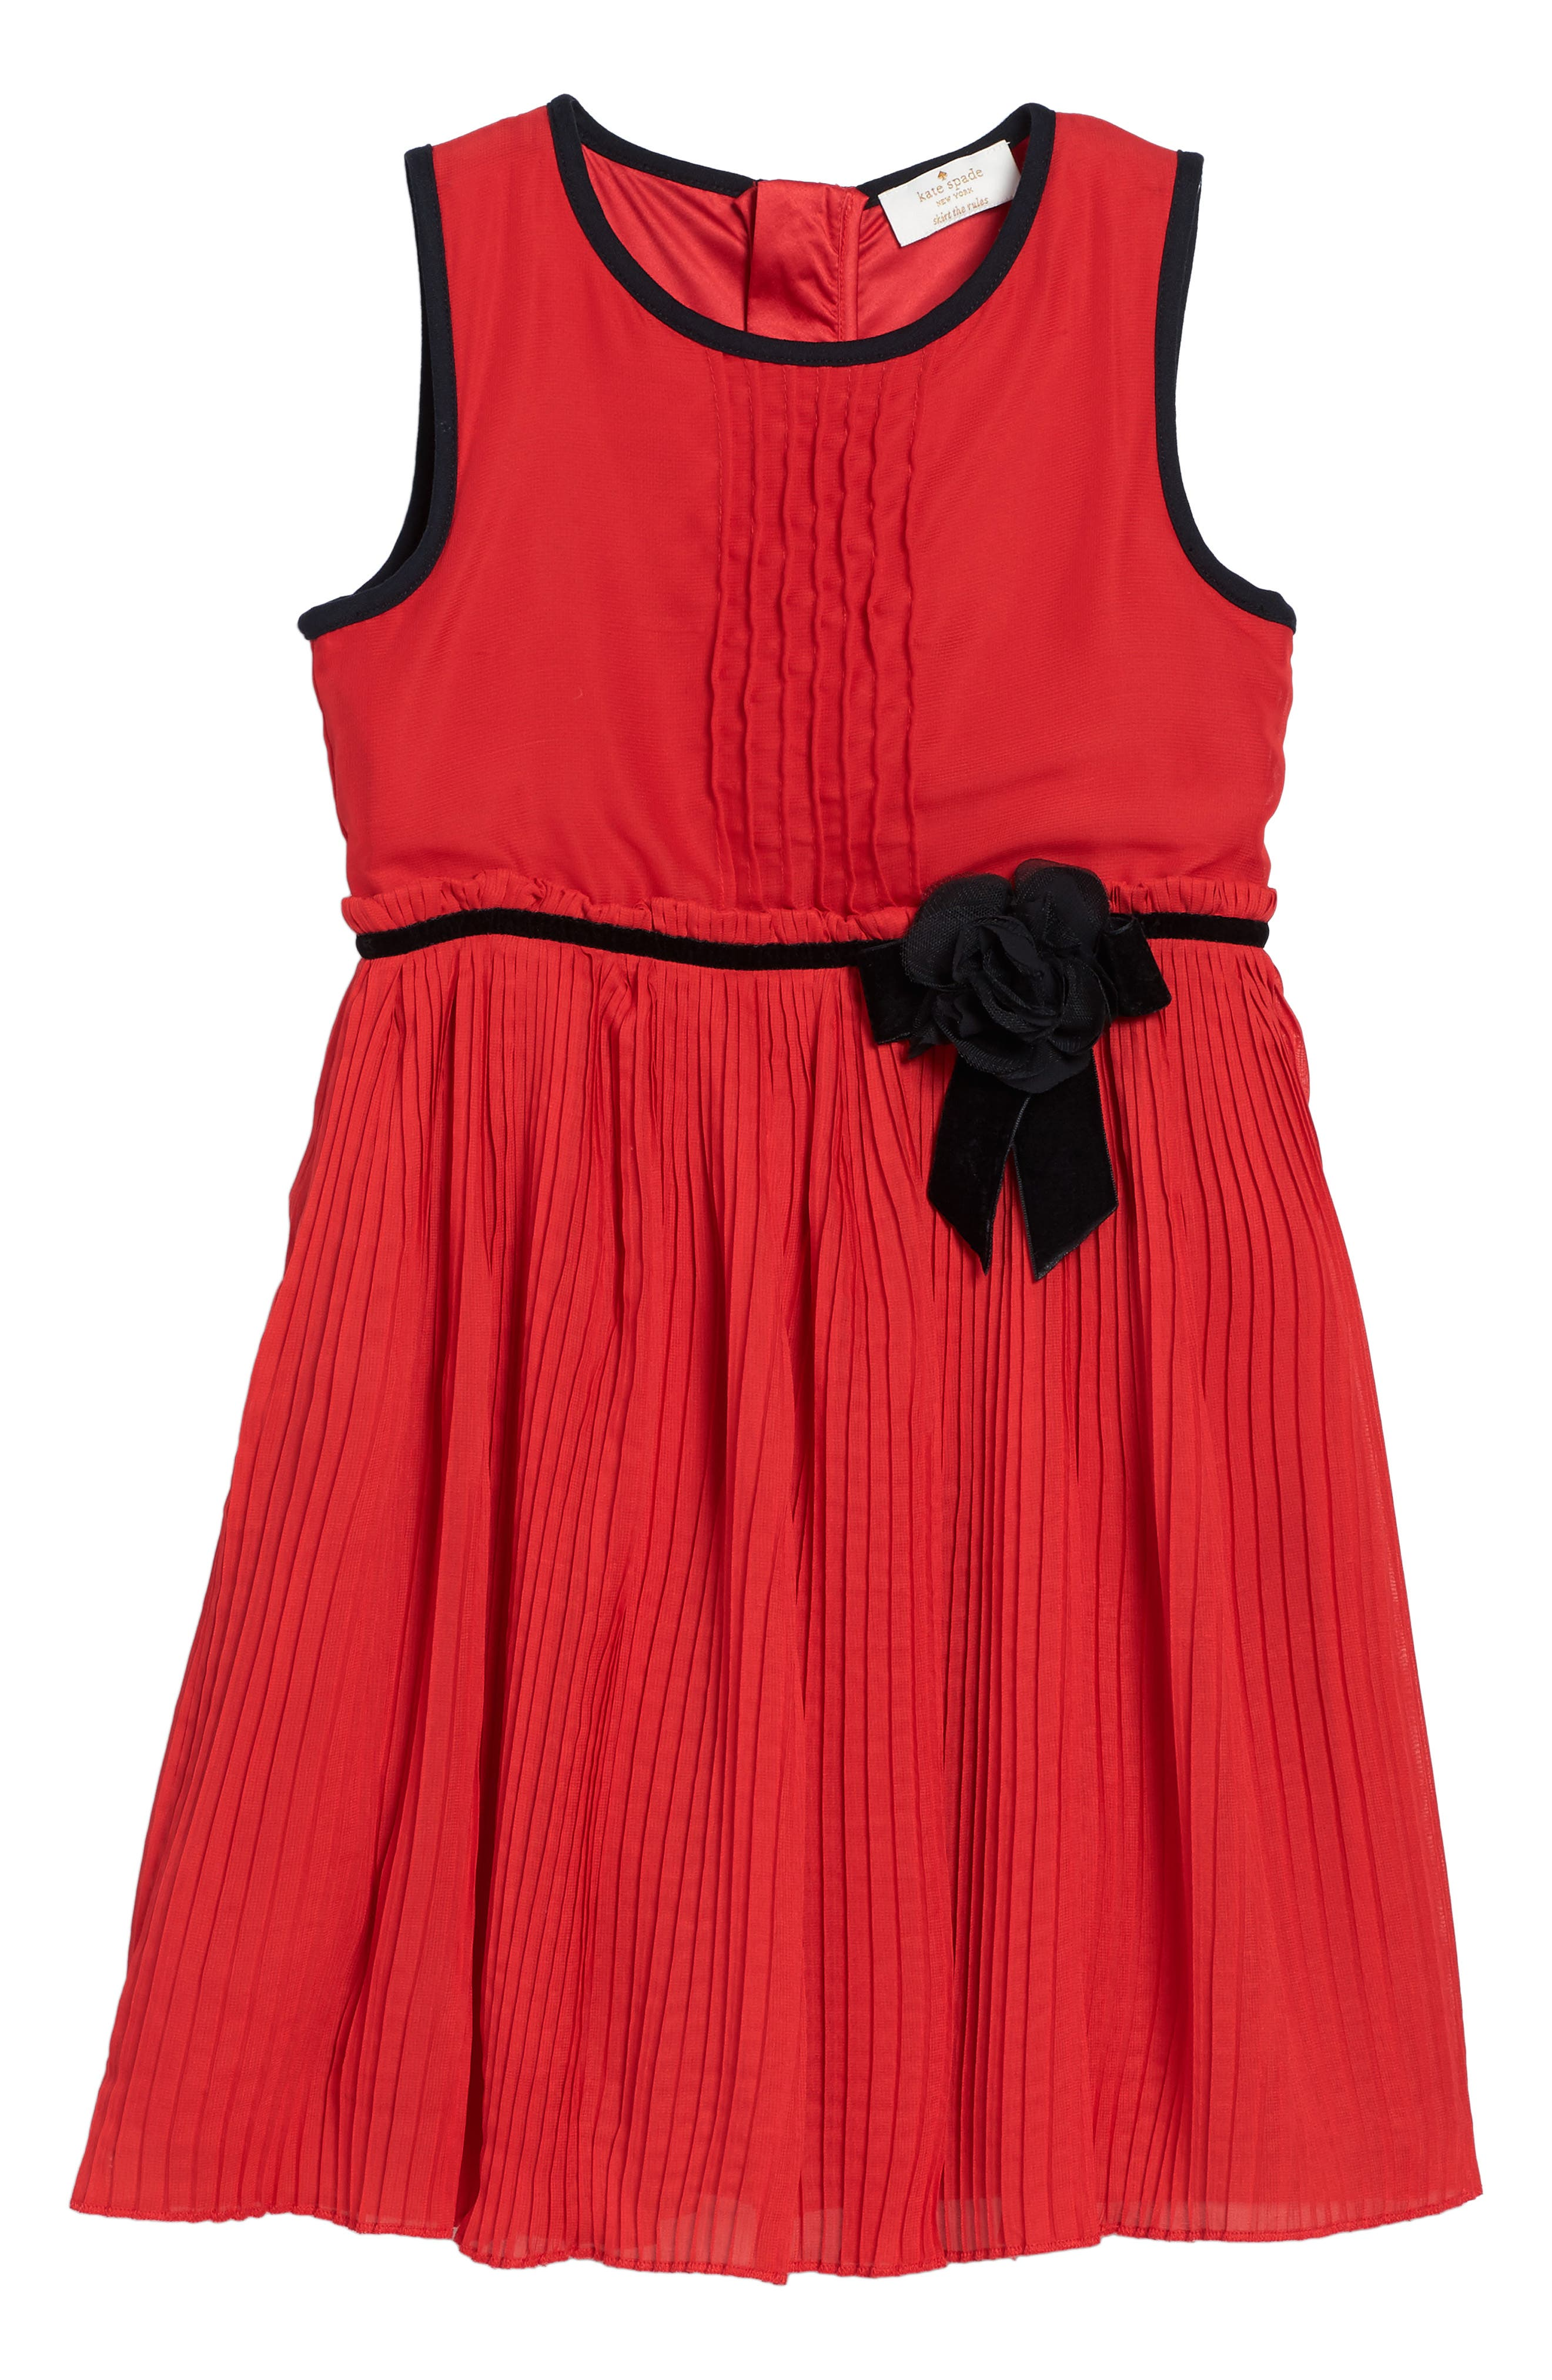 pleated chiffon party dress,                             Main thumbnail 1, color,                             610